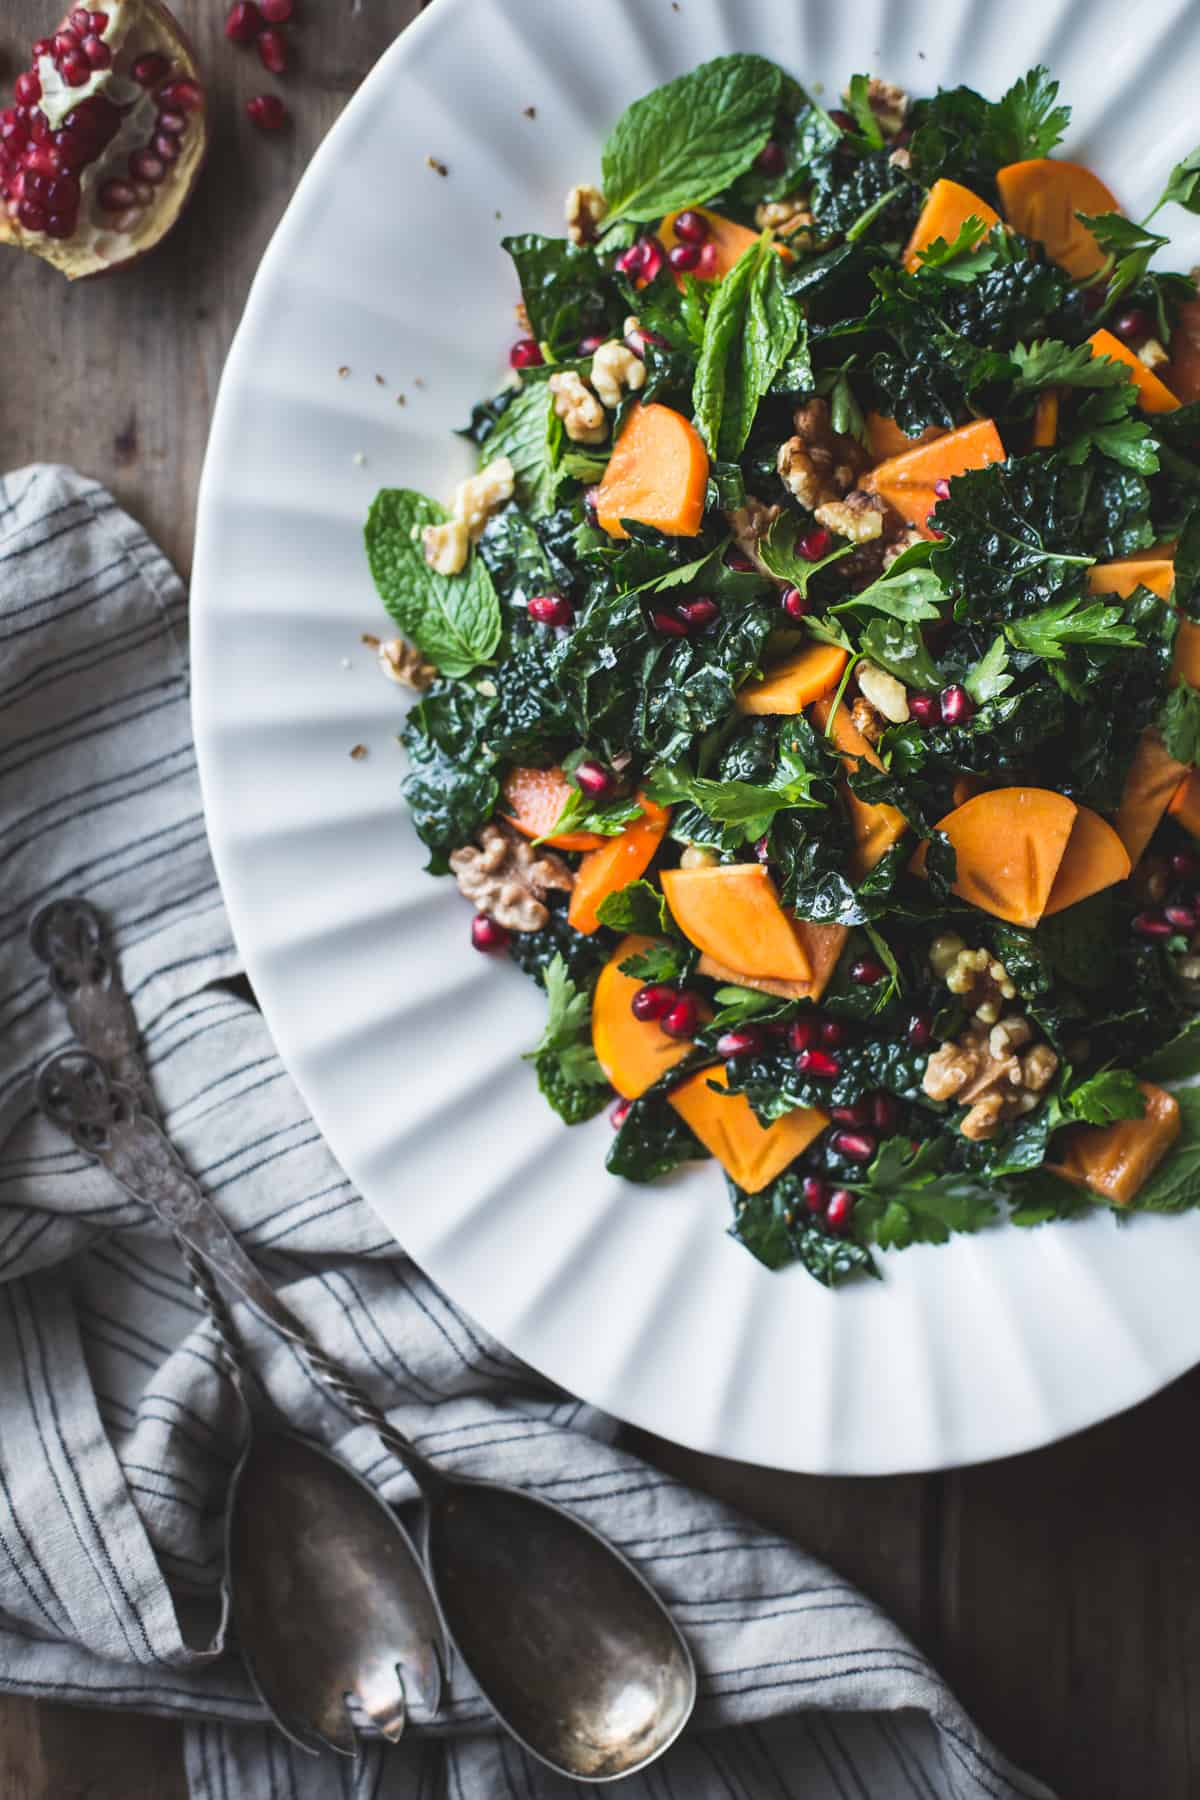 Herbed Kale Salad with Persimmon, Pomegranate and Maple-Cumin Dressing